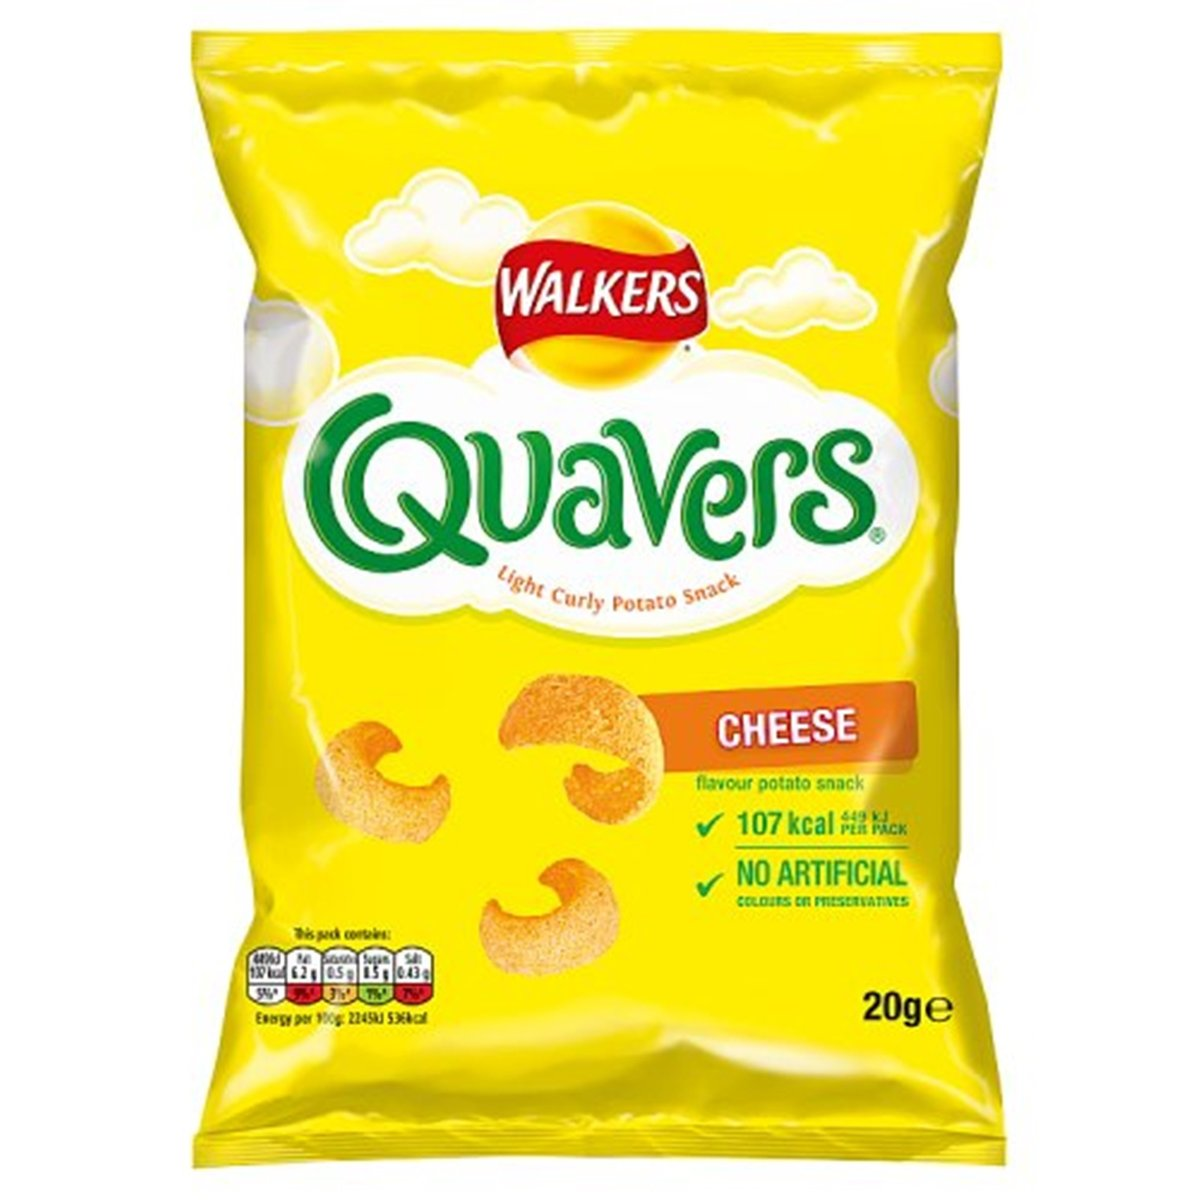 Walkers Quavers Cheese 20g